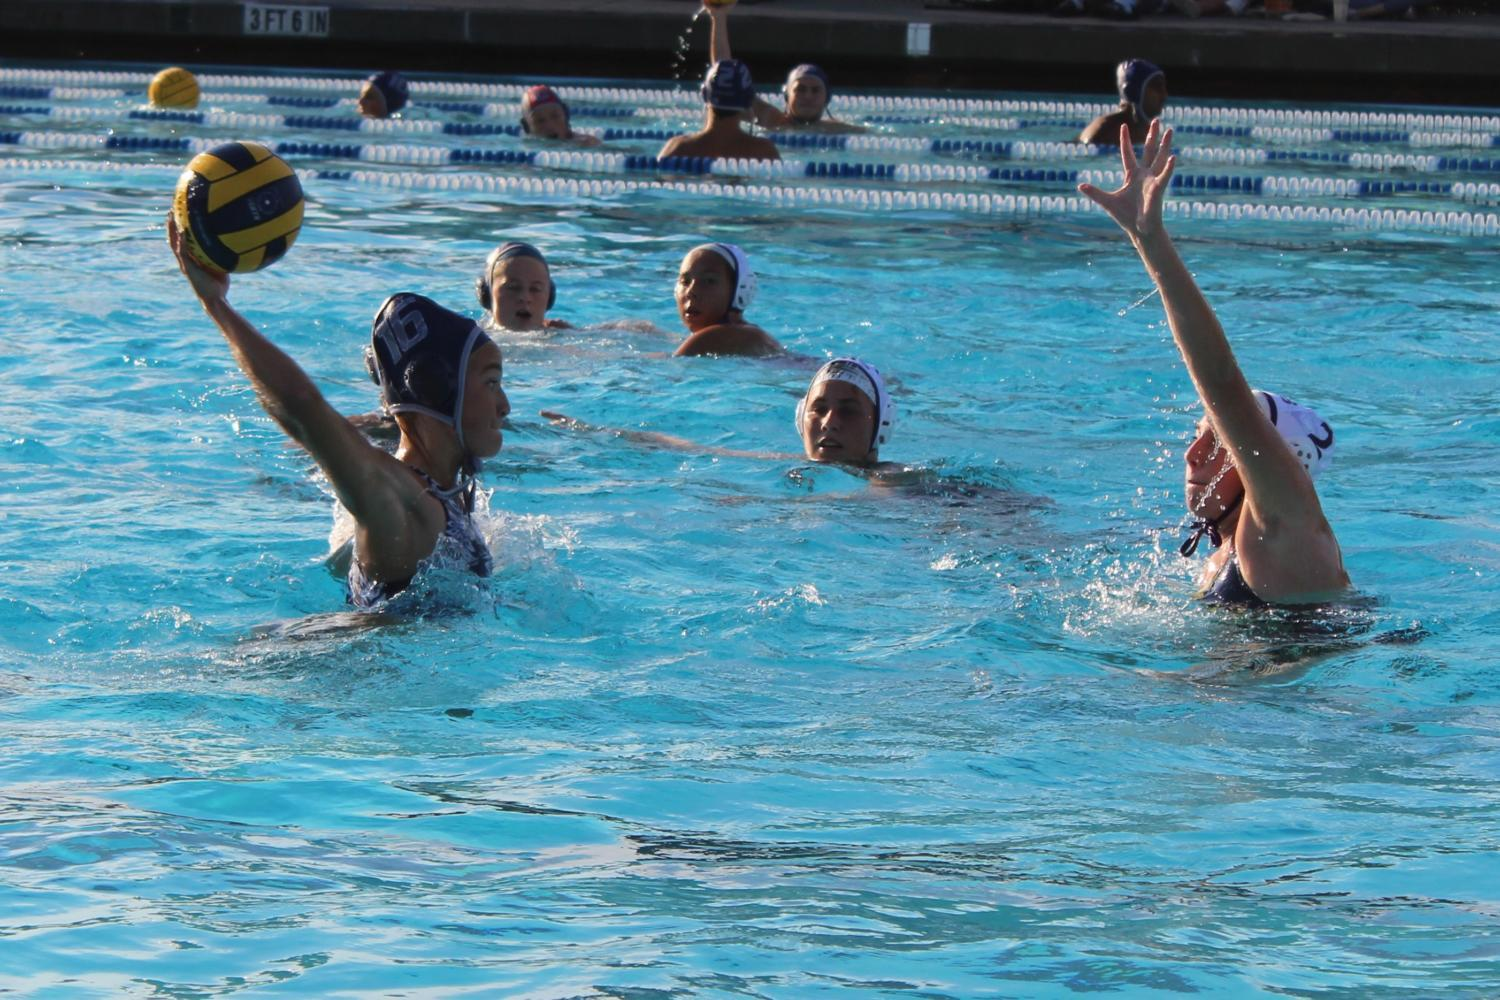 Ciera Stratton, a senior, throws the ball down the pool to score a goal for the Scots.